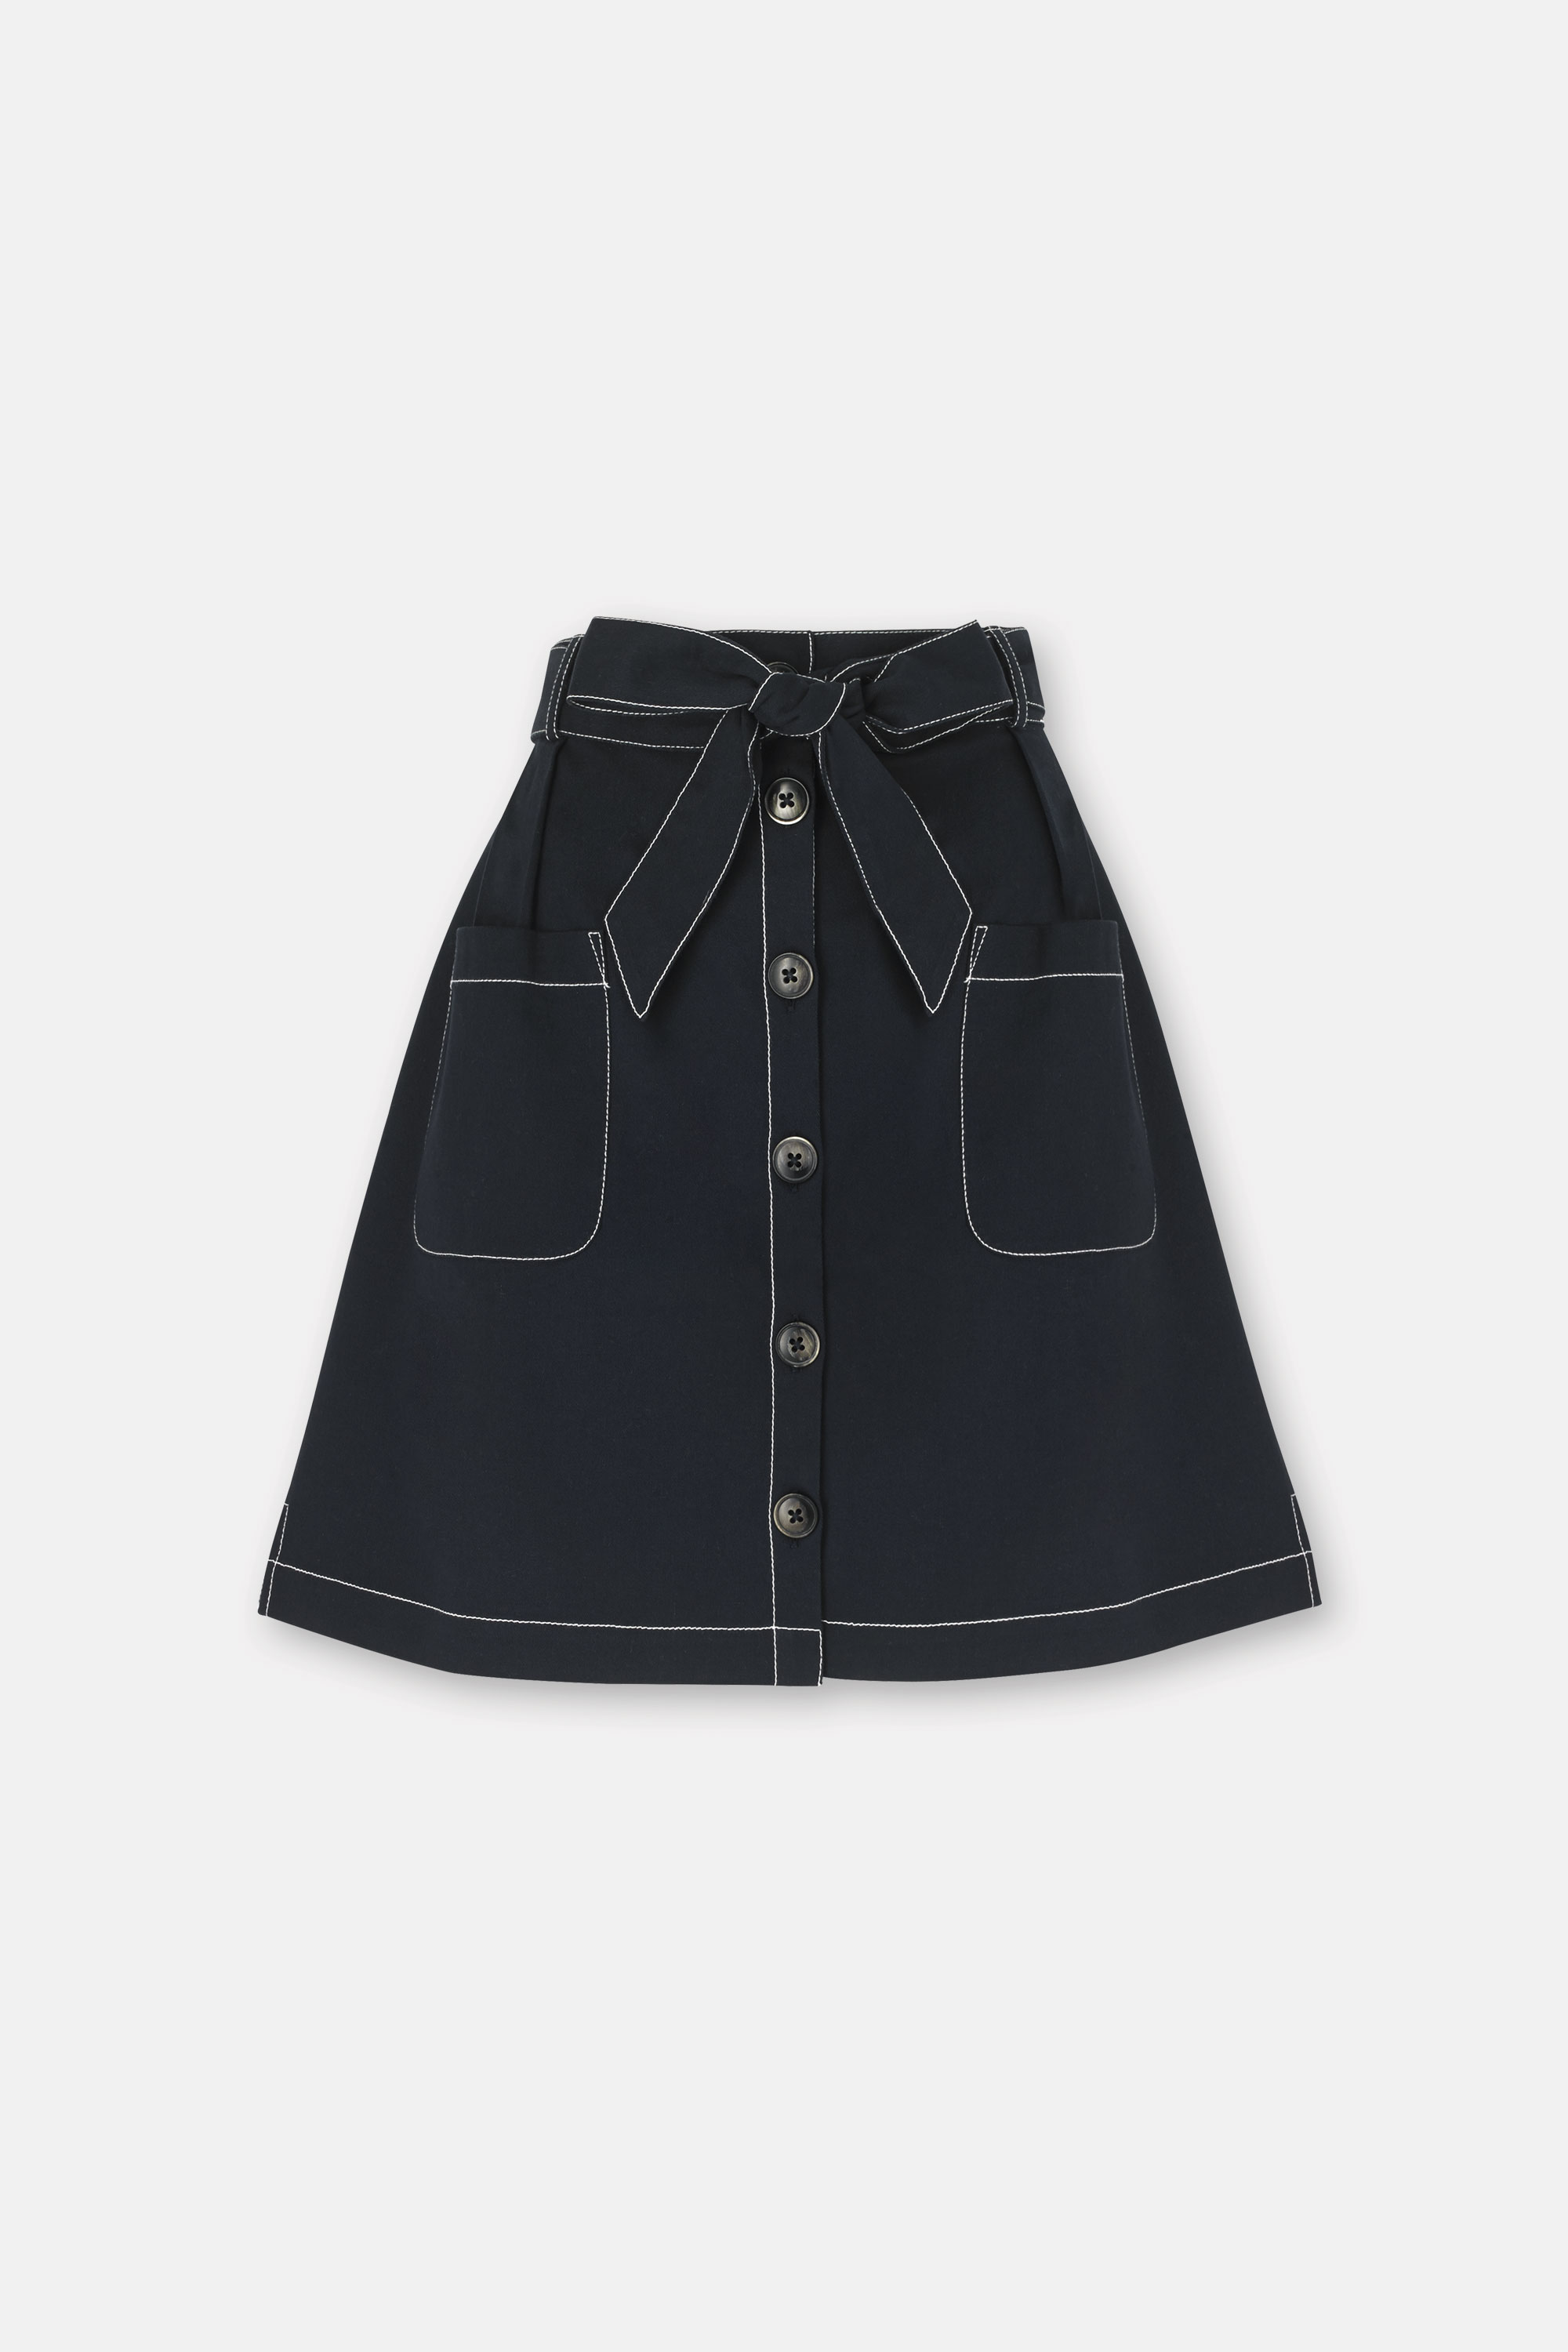 Cath Kidston Navy Mini Utility Skirt, 100% Cotton, 8